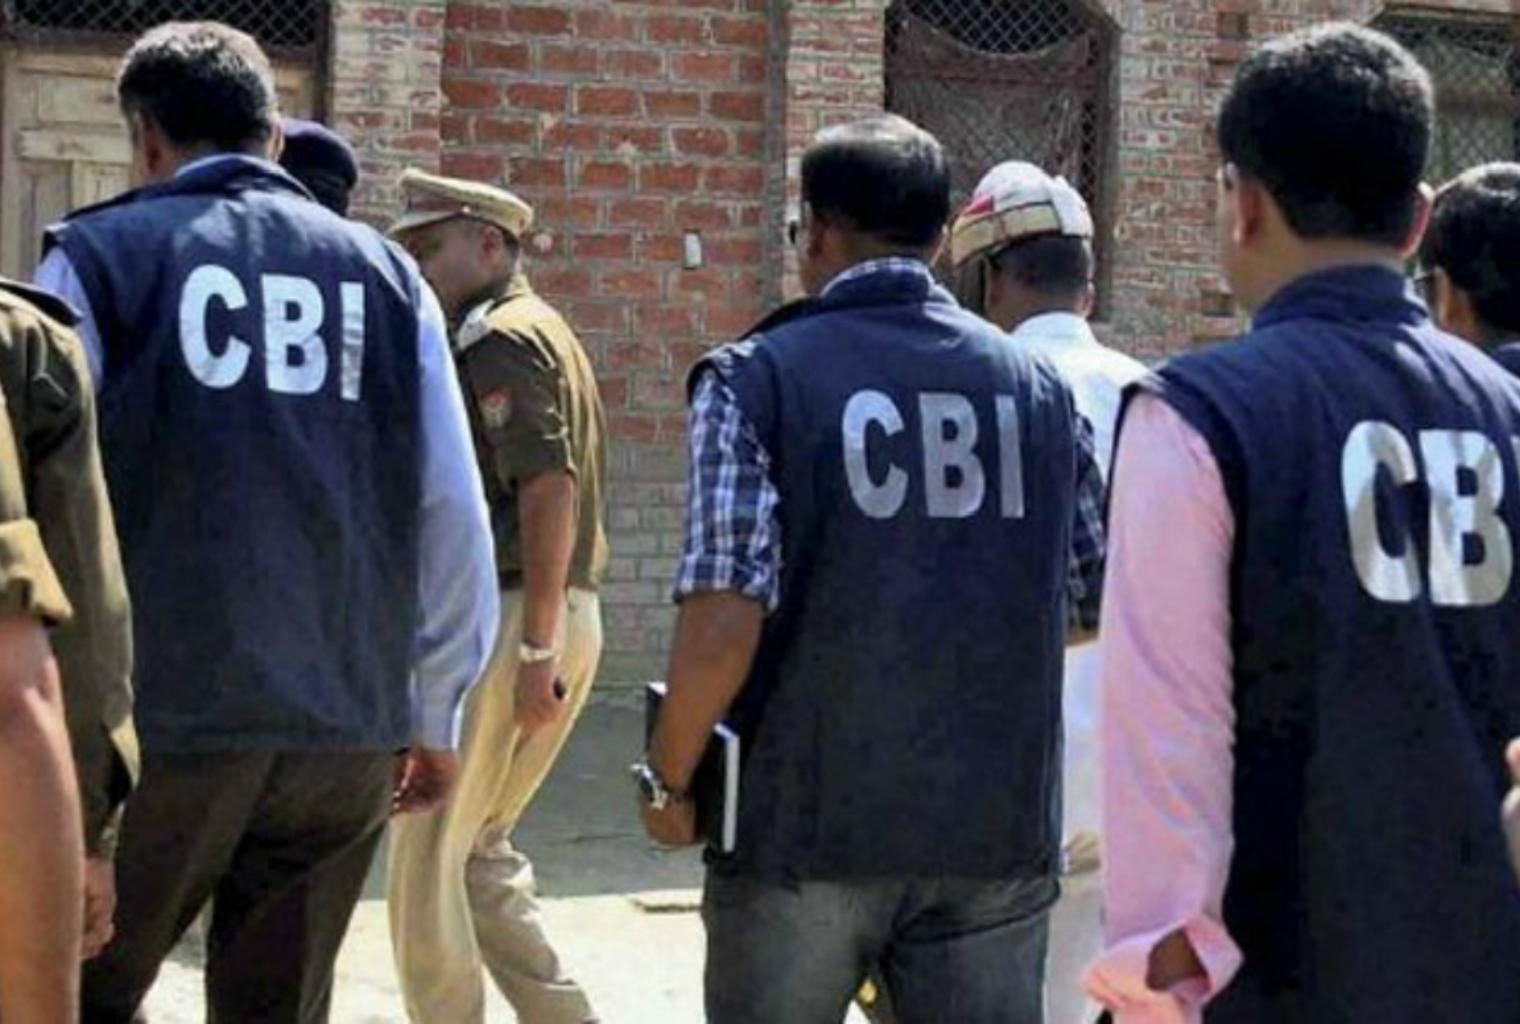 190 Indian Bank Branches Raided in Massive Fraud Crackdown